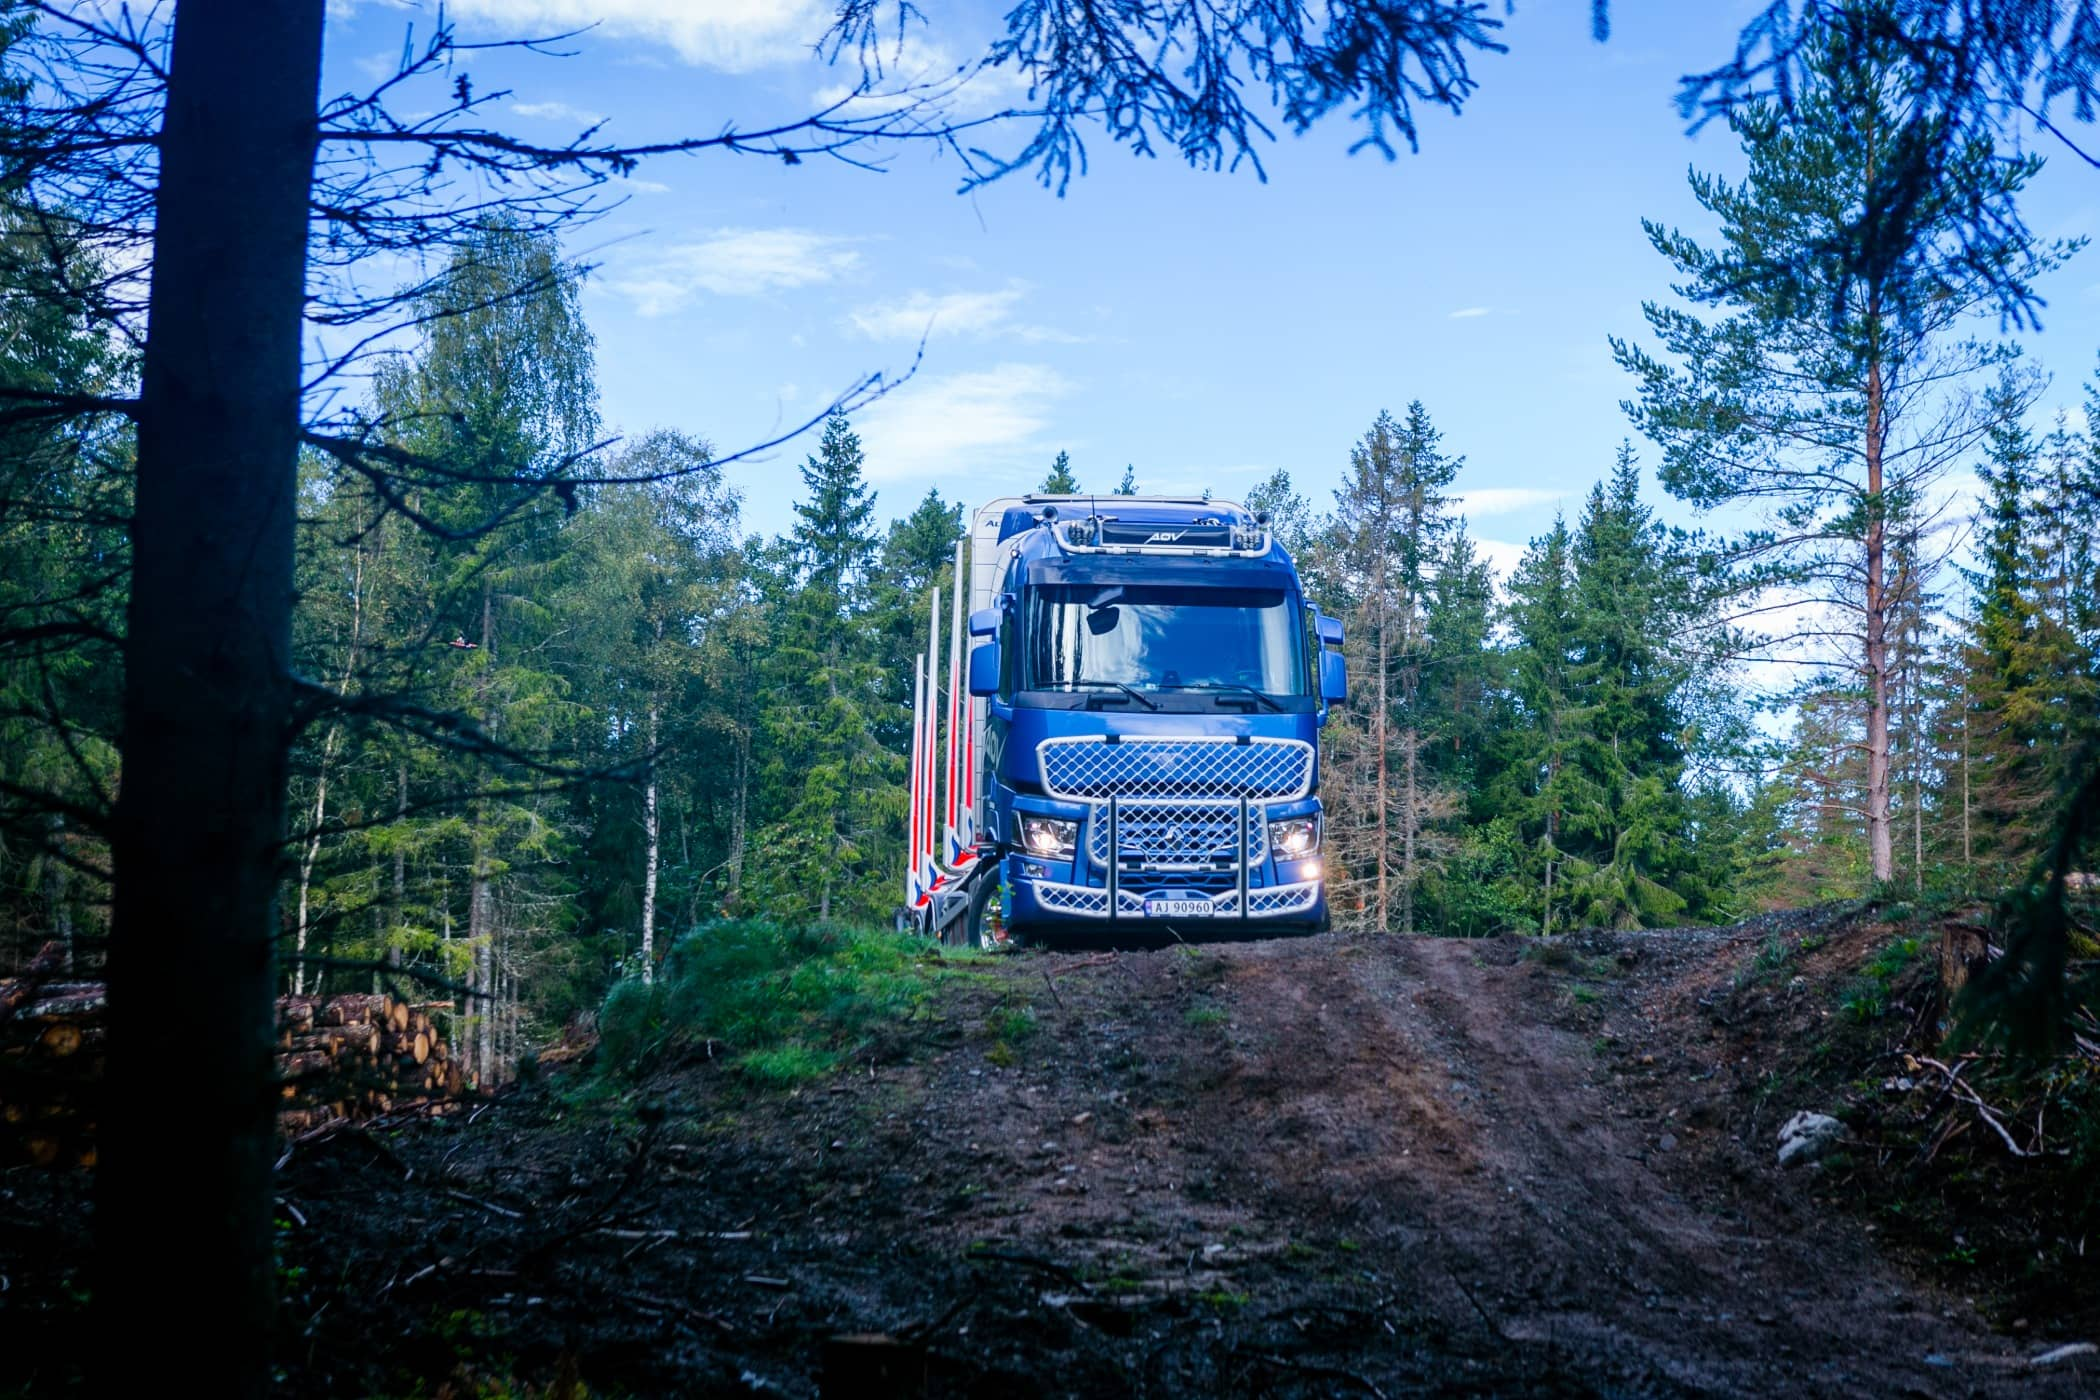 Mode of transport, Commercial vehicle, Natural environment, Wilderness, Forest, Vegetation, Tree